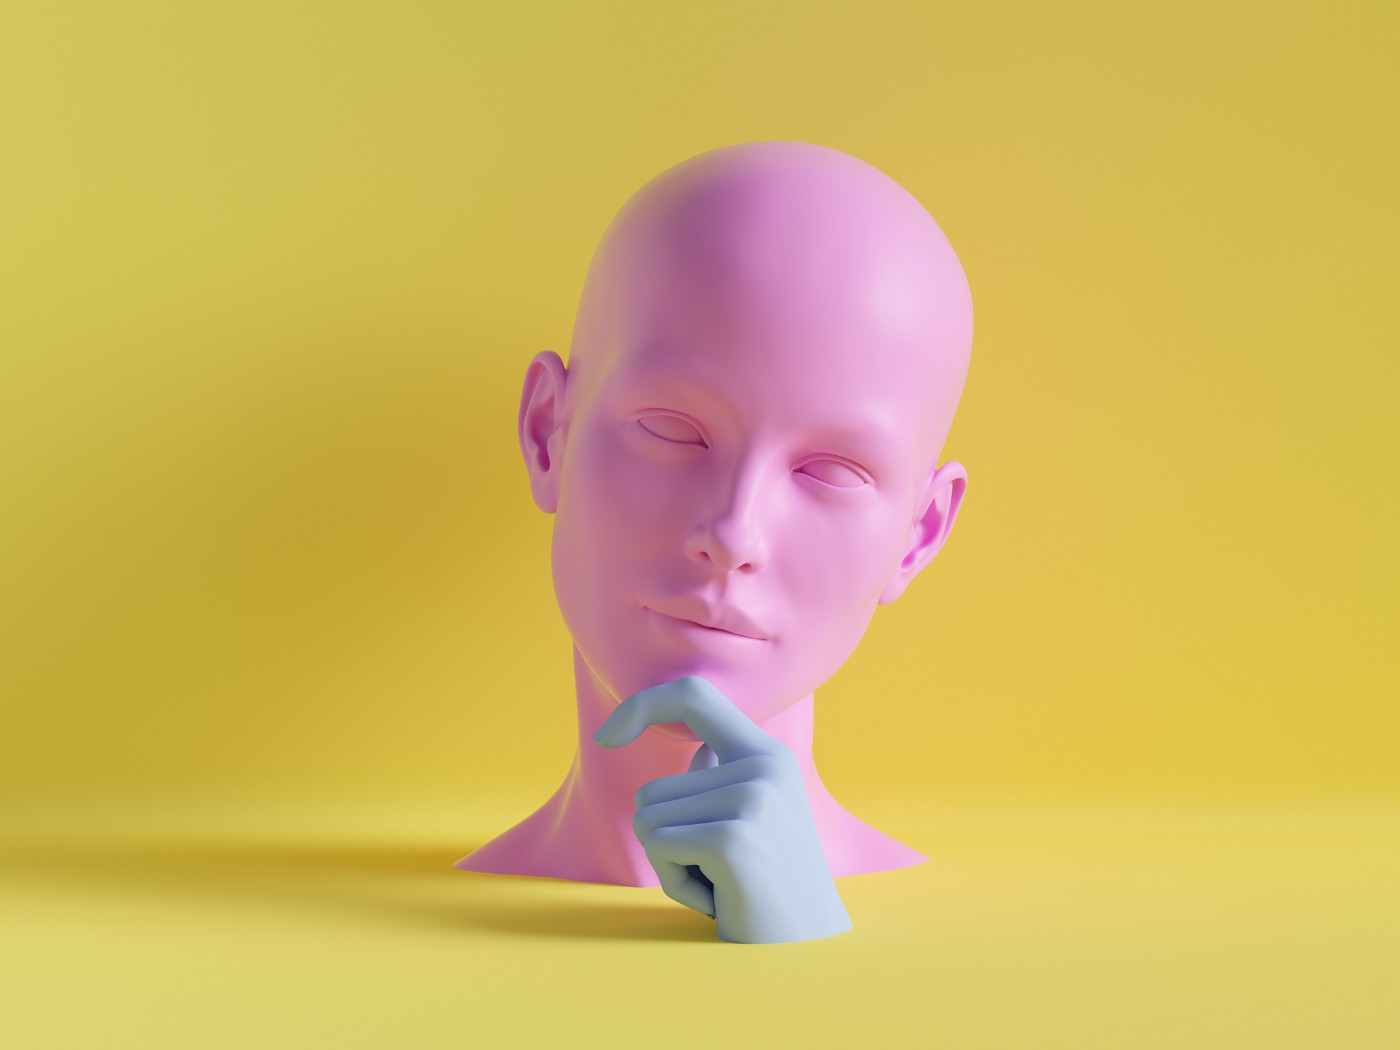 A 3D render of a human face with a finger on its chin, contemplative pose.